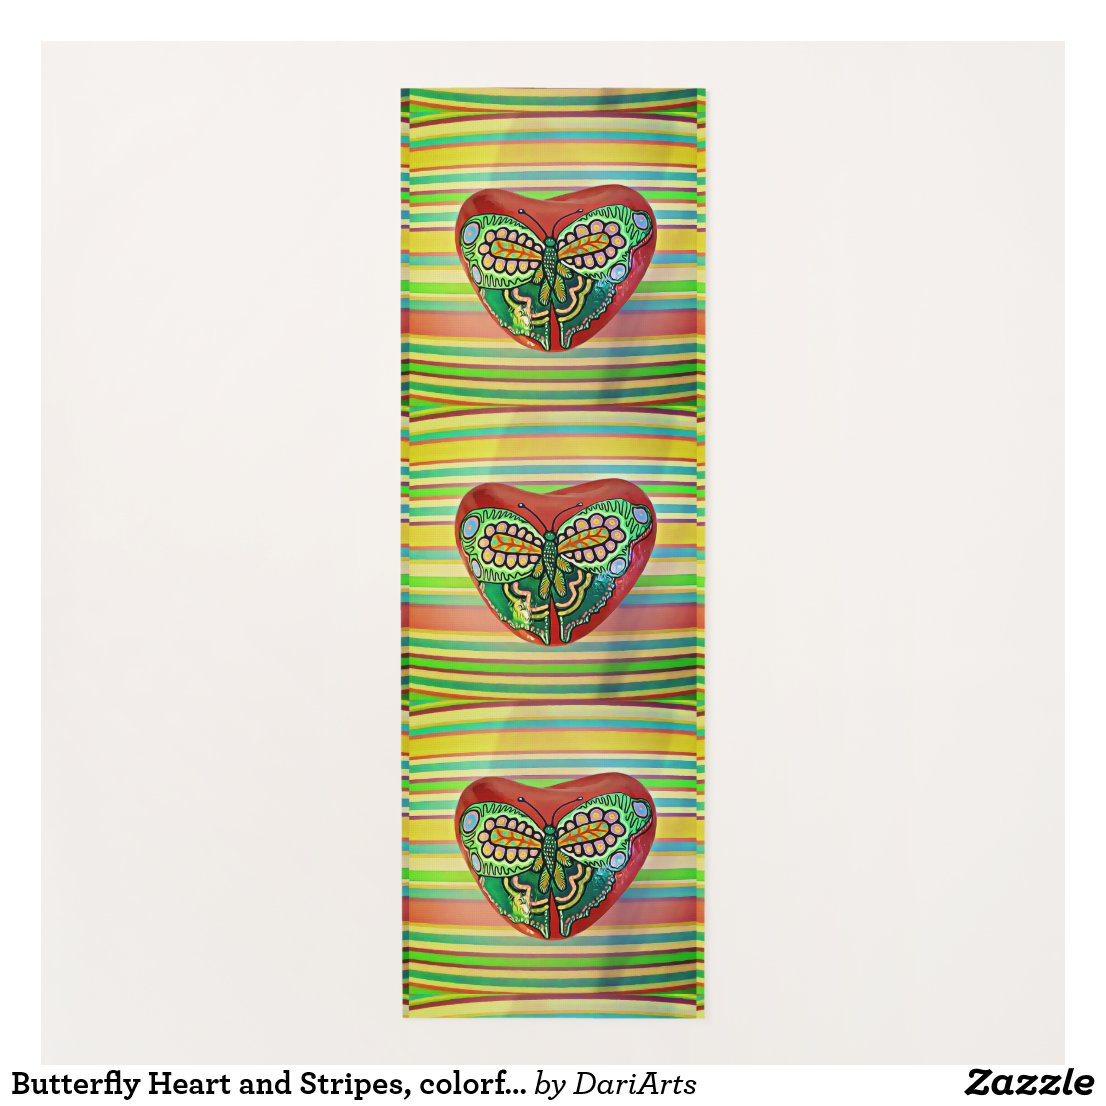 Butterfly Heart and Stripes, colorful art yoga mat